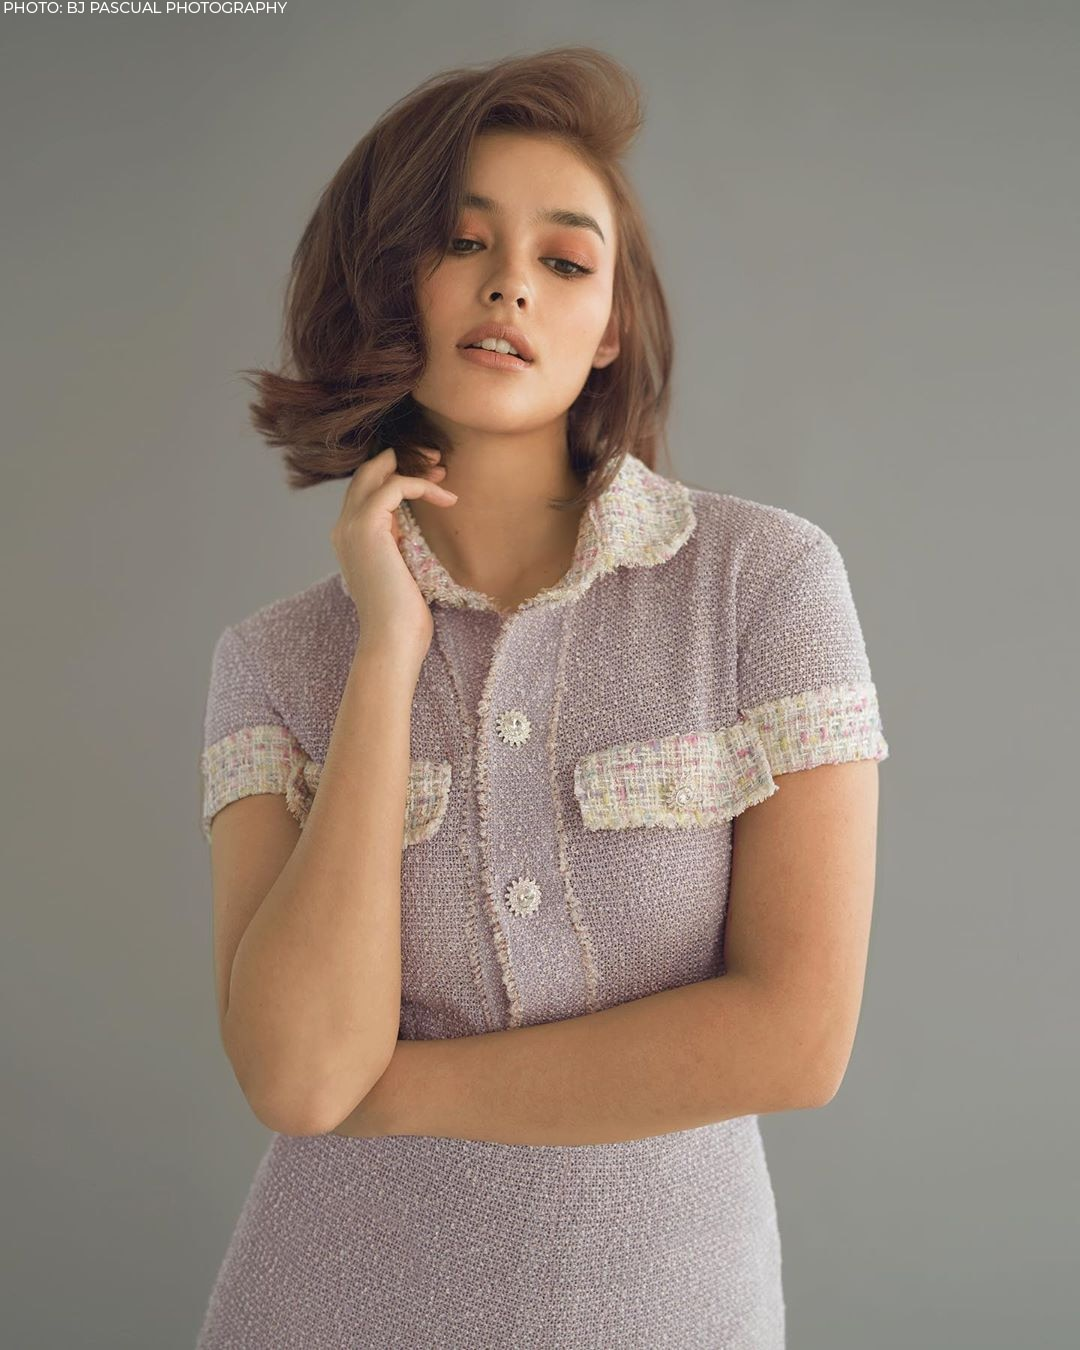 Liza Soberano in dreamy photoshoot with BJ Pascual